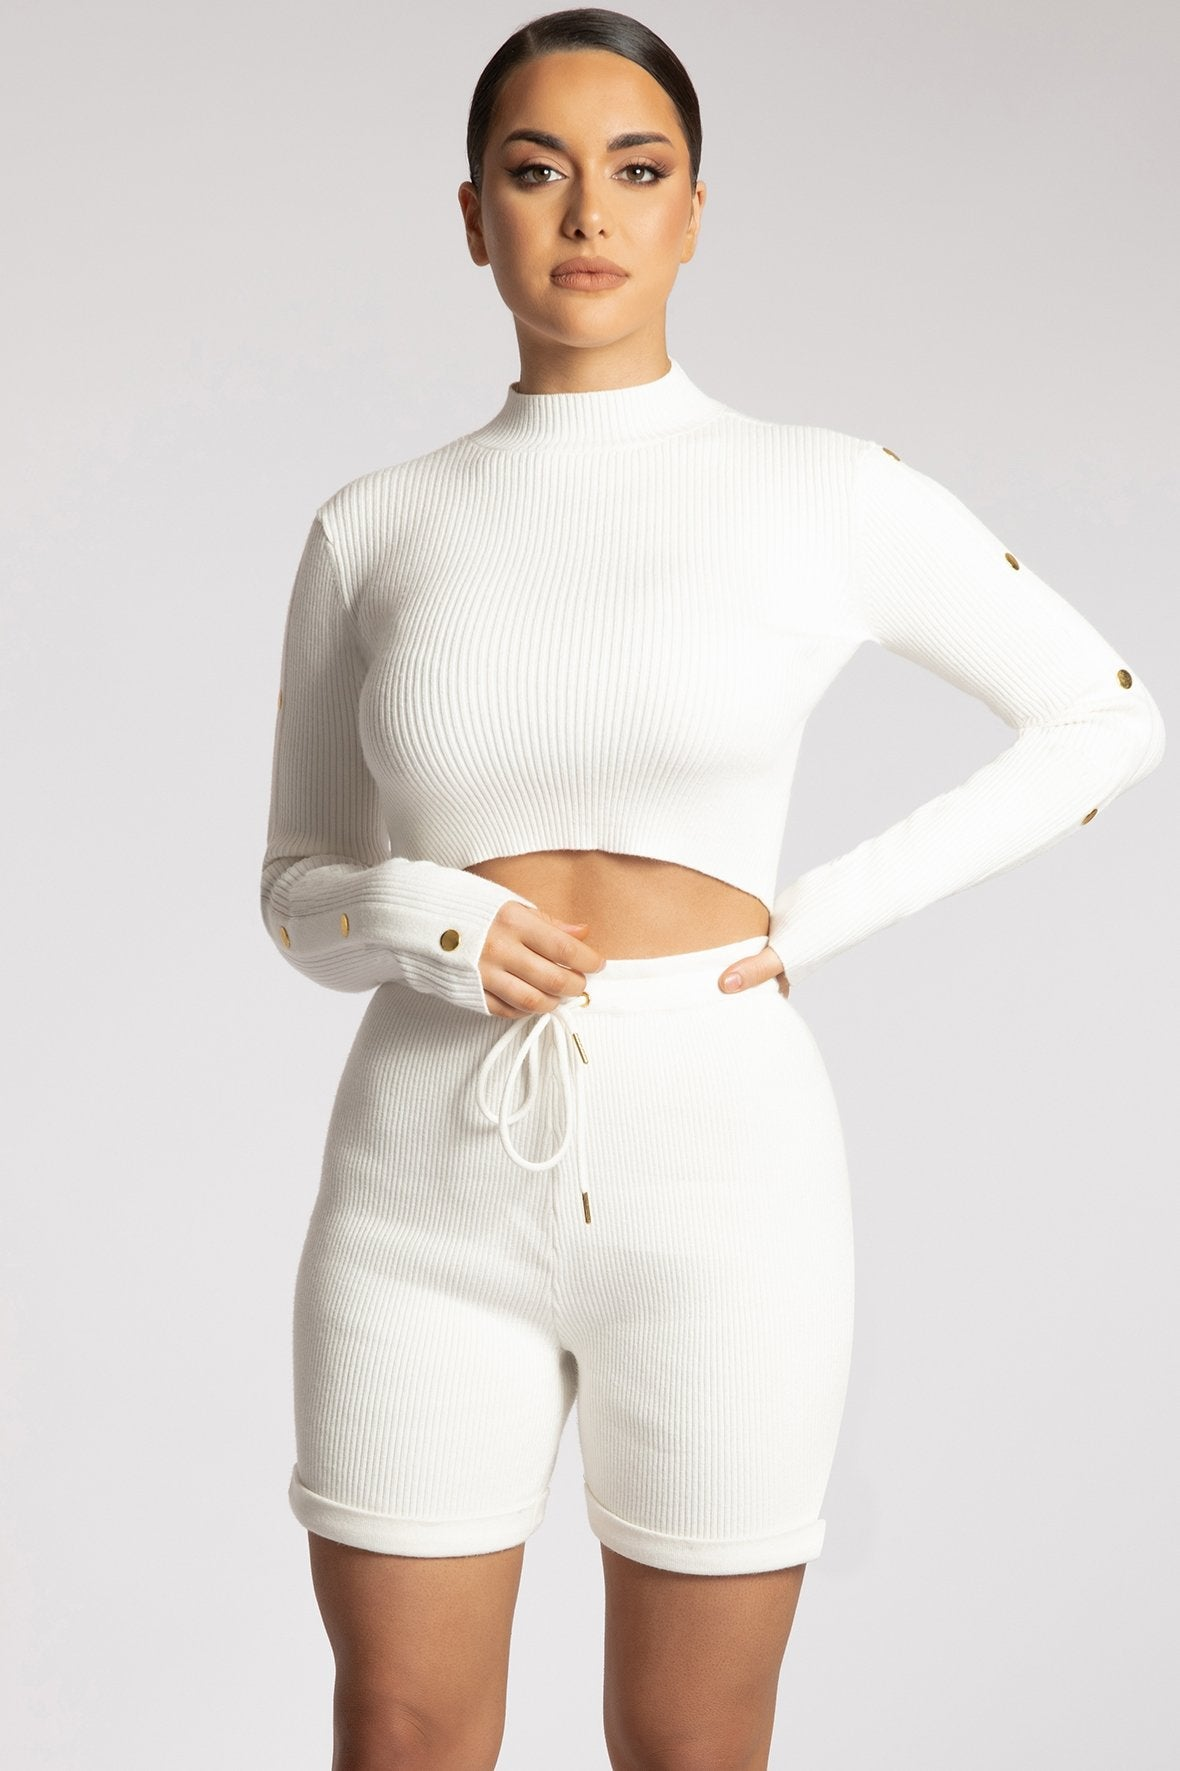 Camber Button Sleeve Detail Crop Top - White - MESHKI